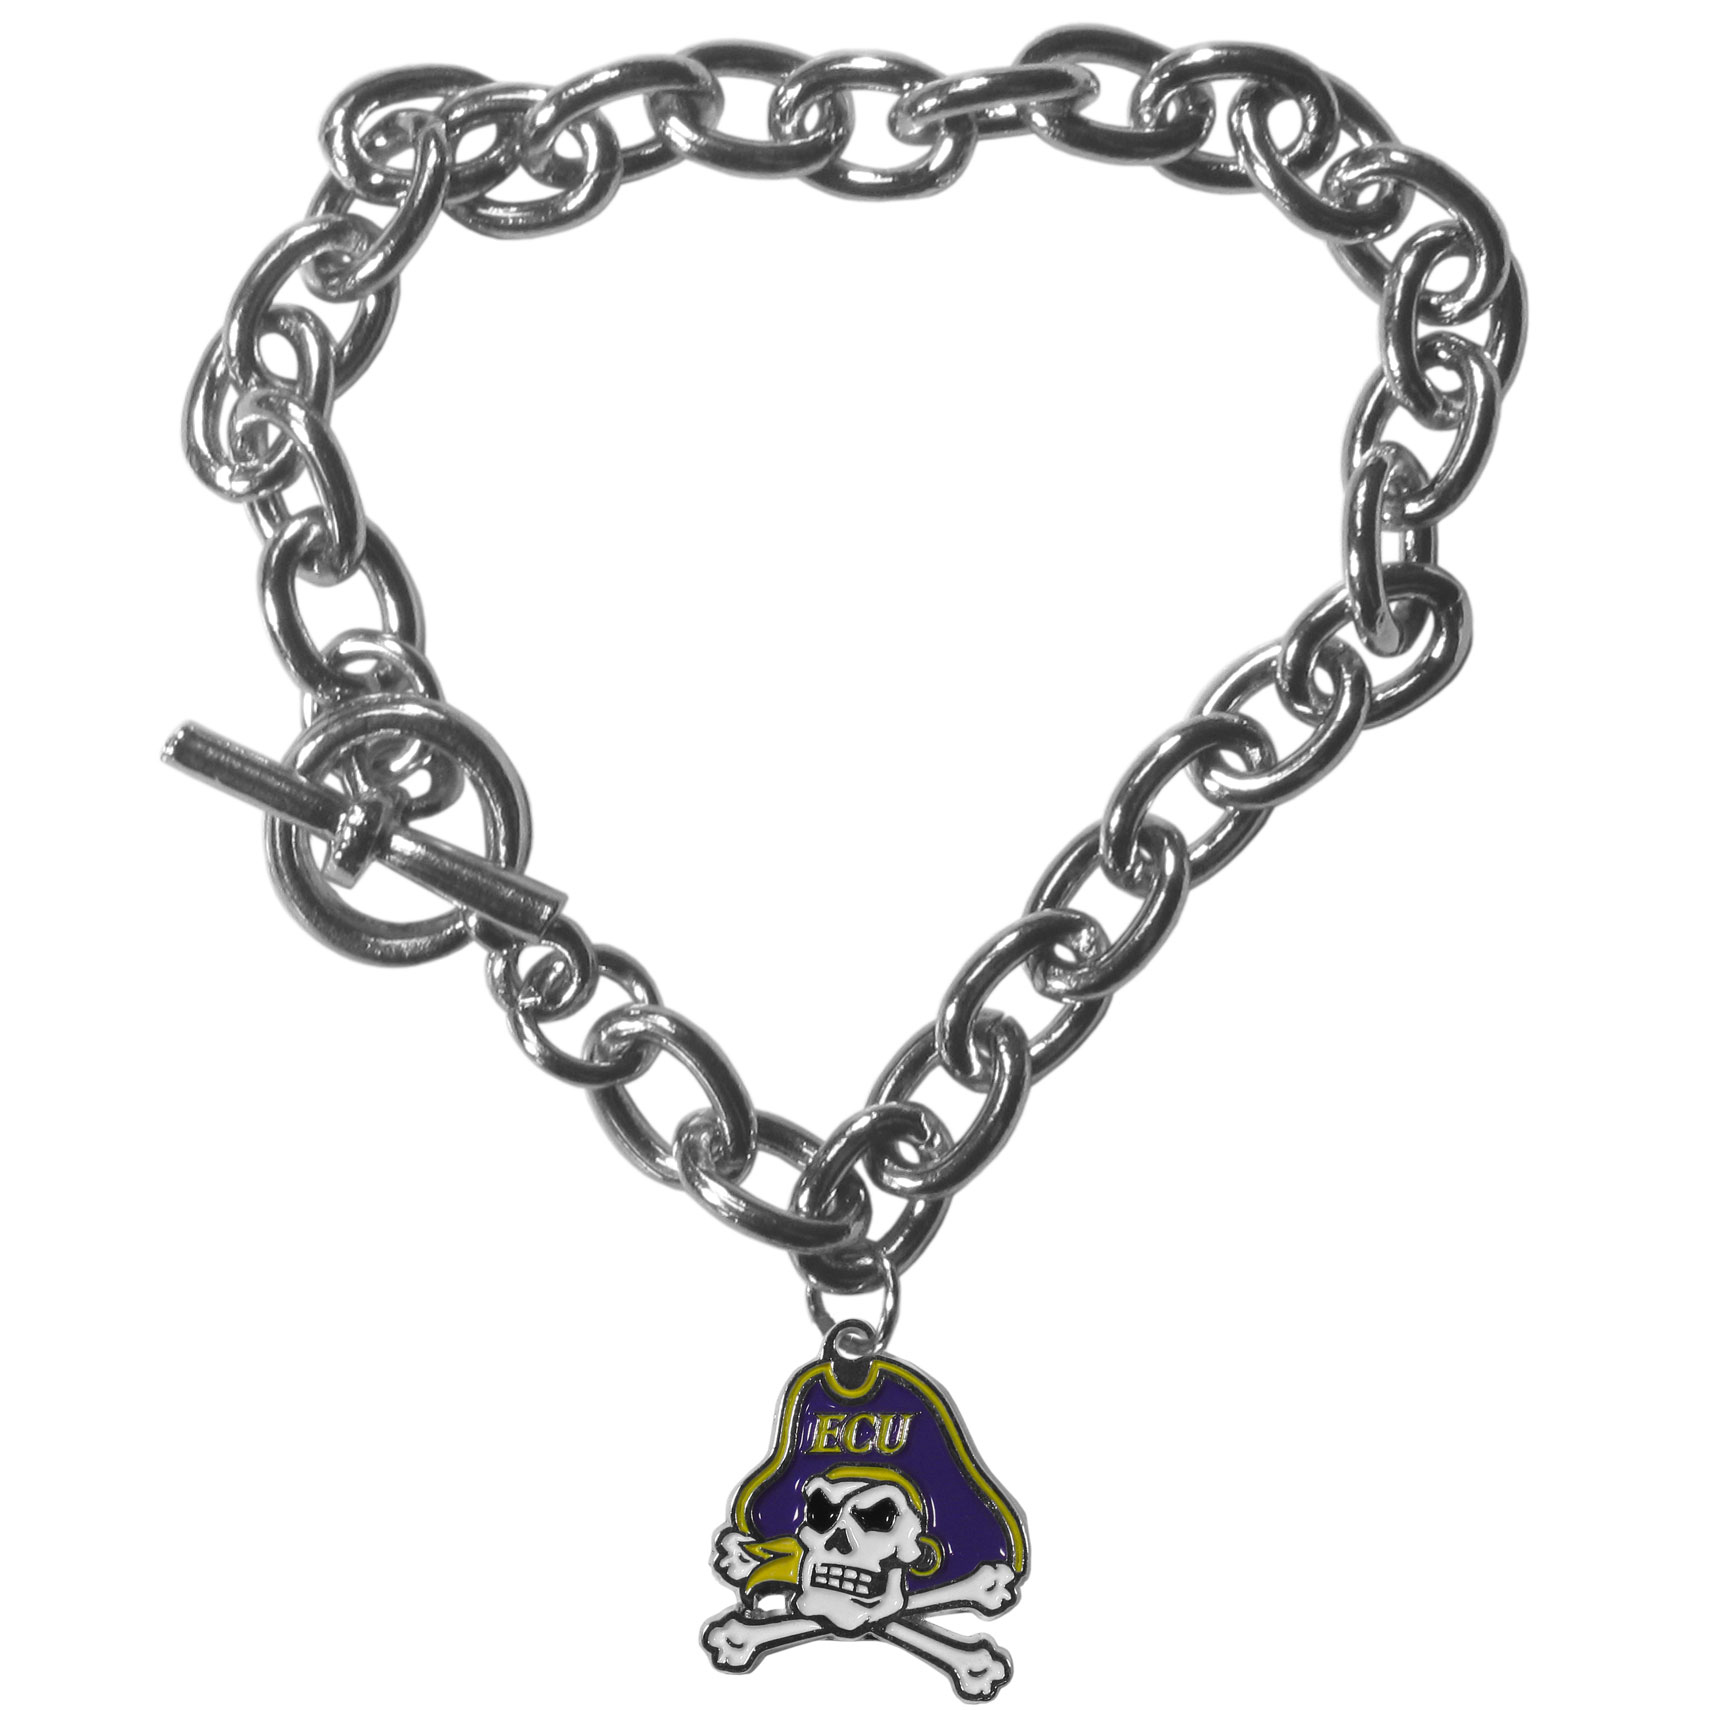 East Carolina Pirates Charm Chain Bracelet - Our classic single charm bracelet is a great way to show off your team pride! The 7.5 inch large link chain features a high polish East Carolina Pirates charm and features a toggle clasp which makes it super easy to take on and off.